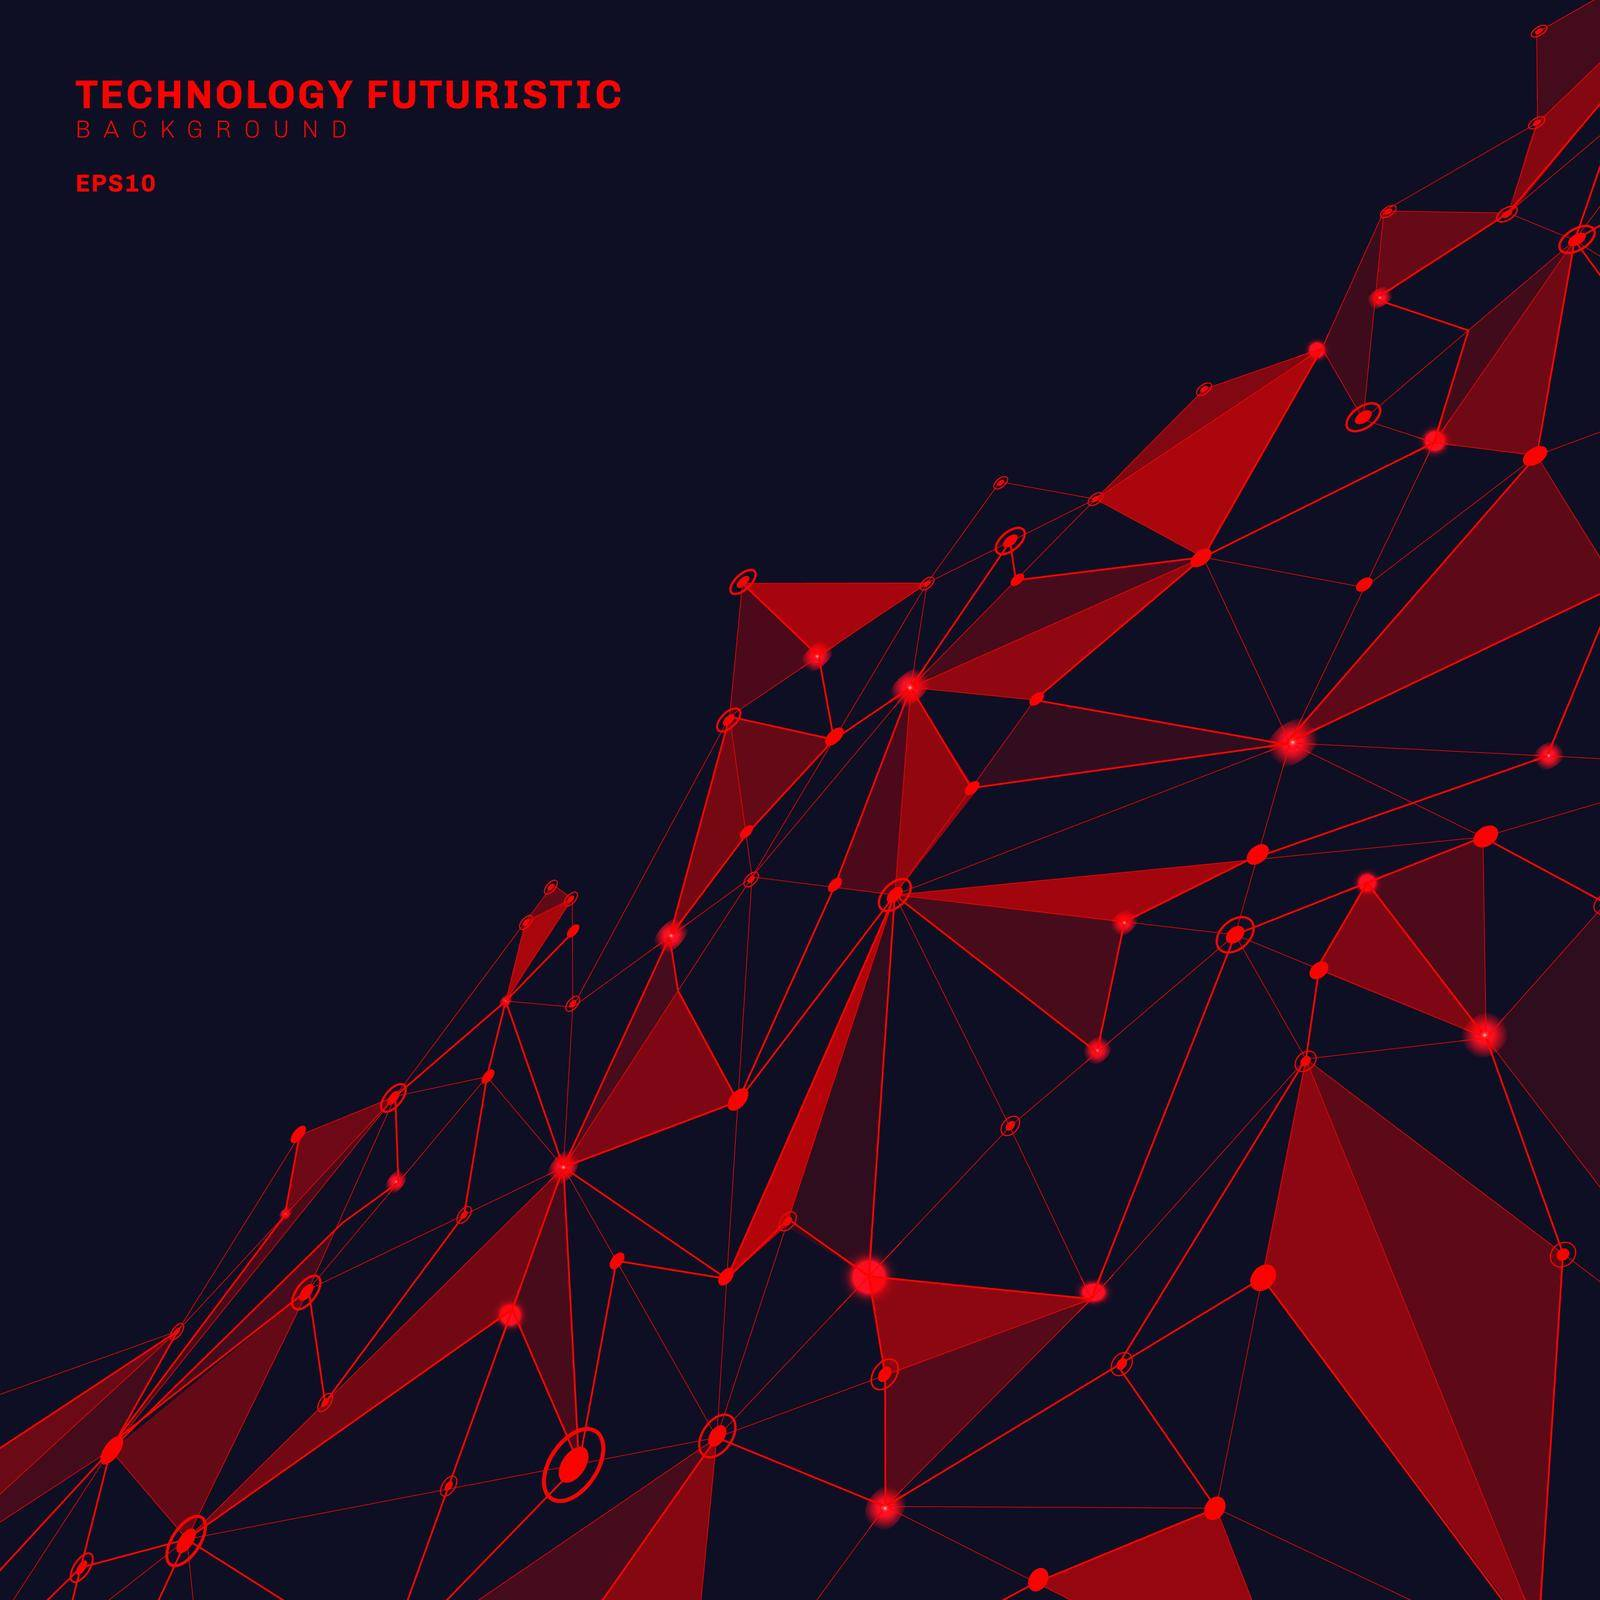 Abstract red polygonal shapes on dark blue perspective background consisting of lines and points in the form of planets and constellations technology concept. Digital internet connection. Vector illustration